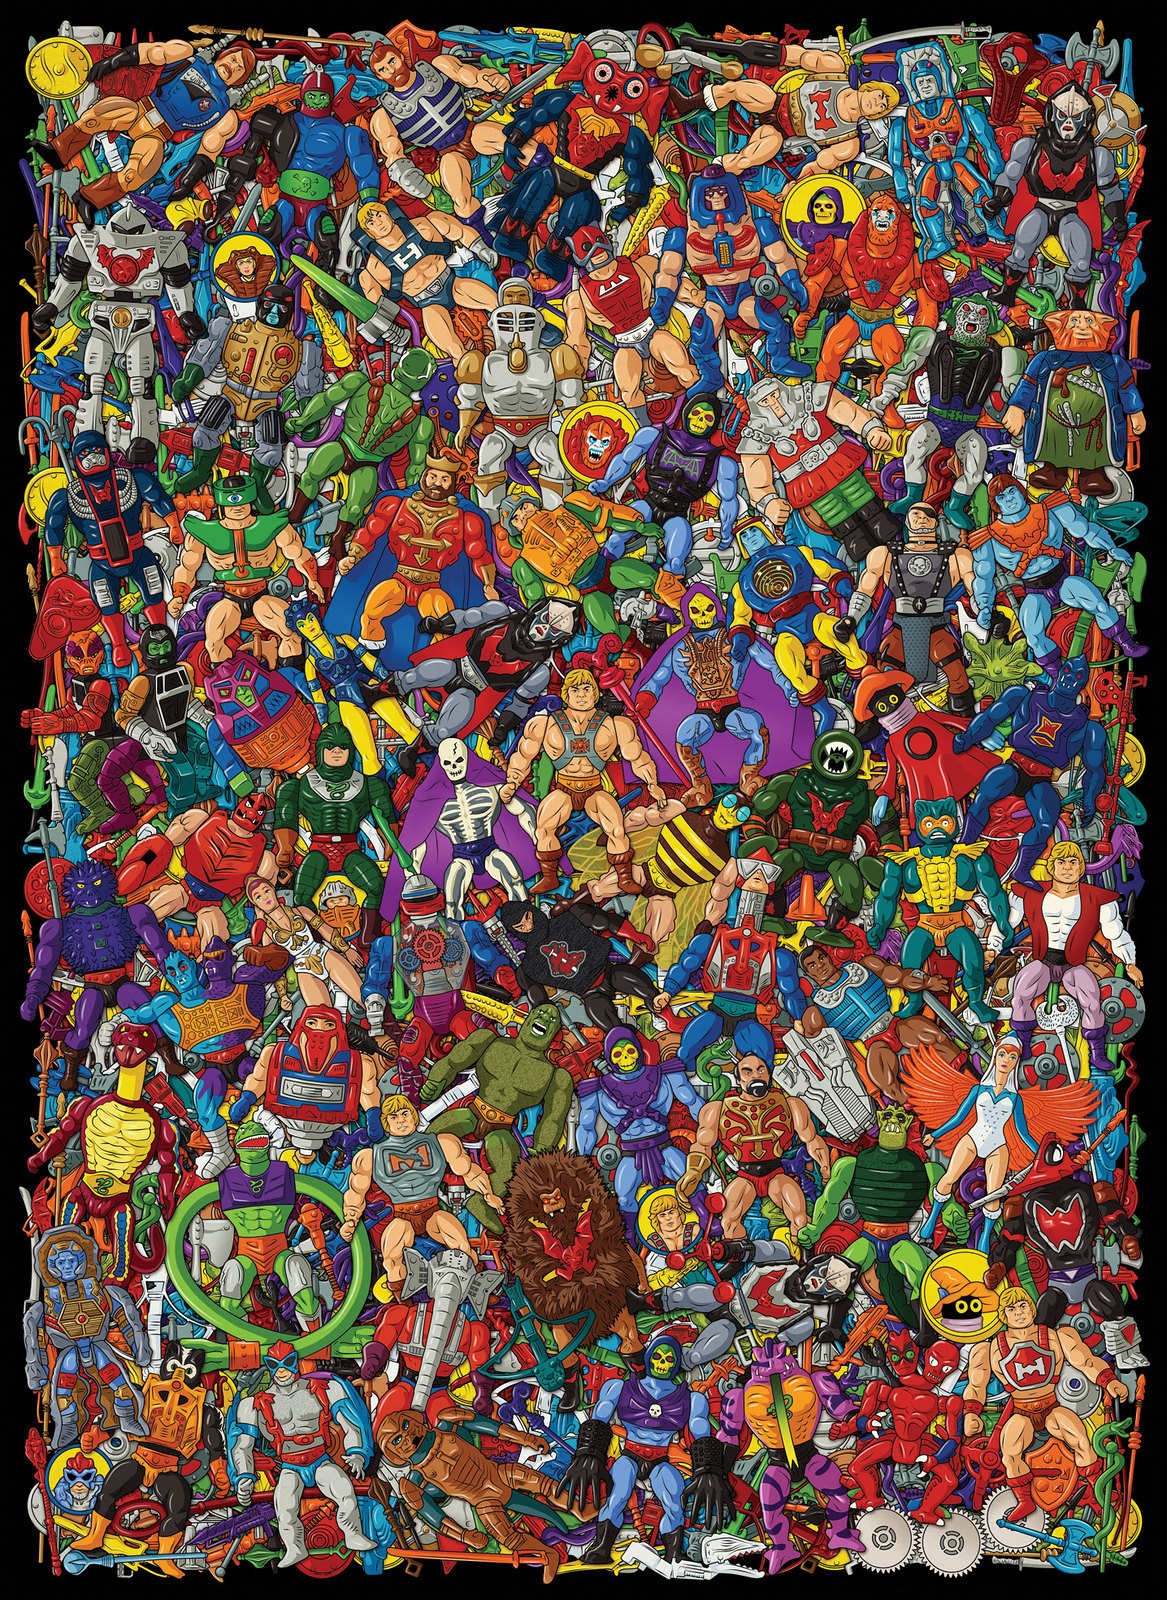 I Heart He-Man by Bill McConkey